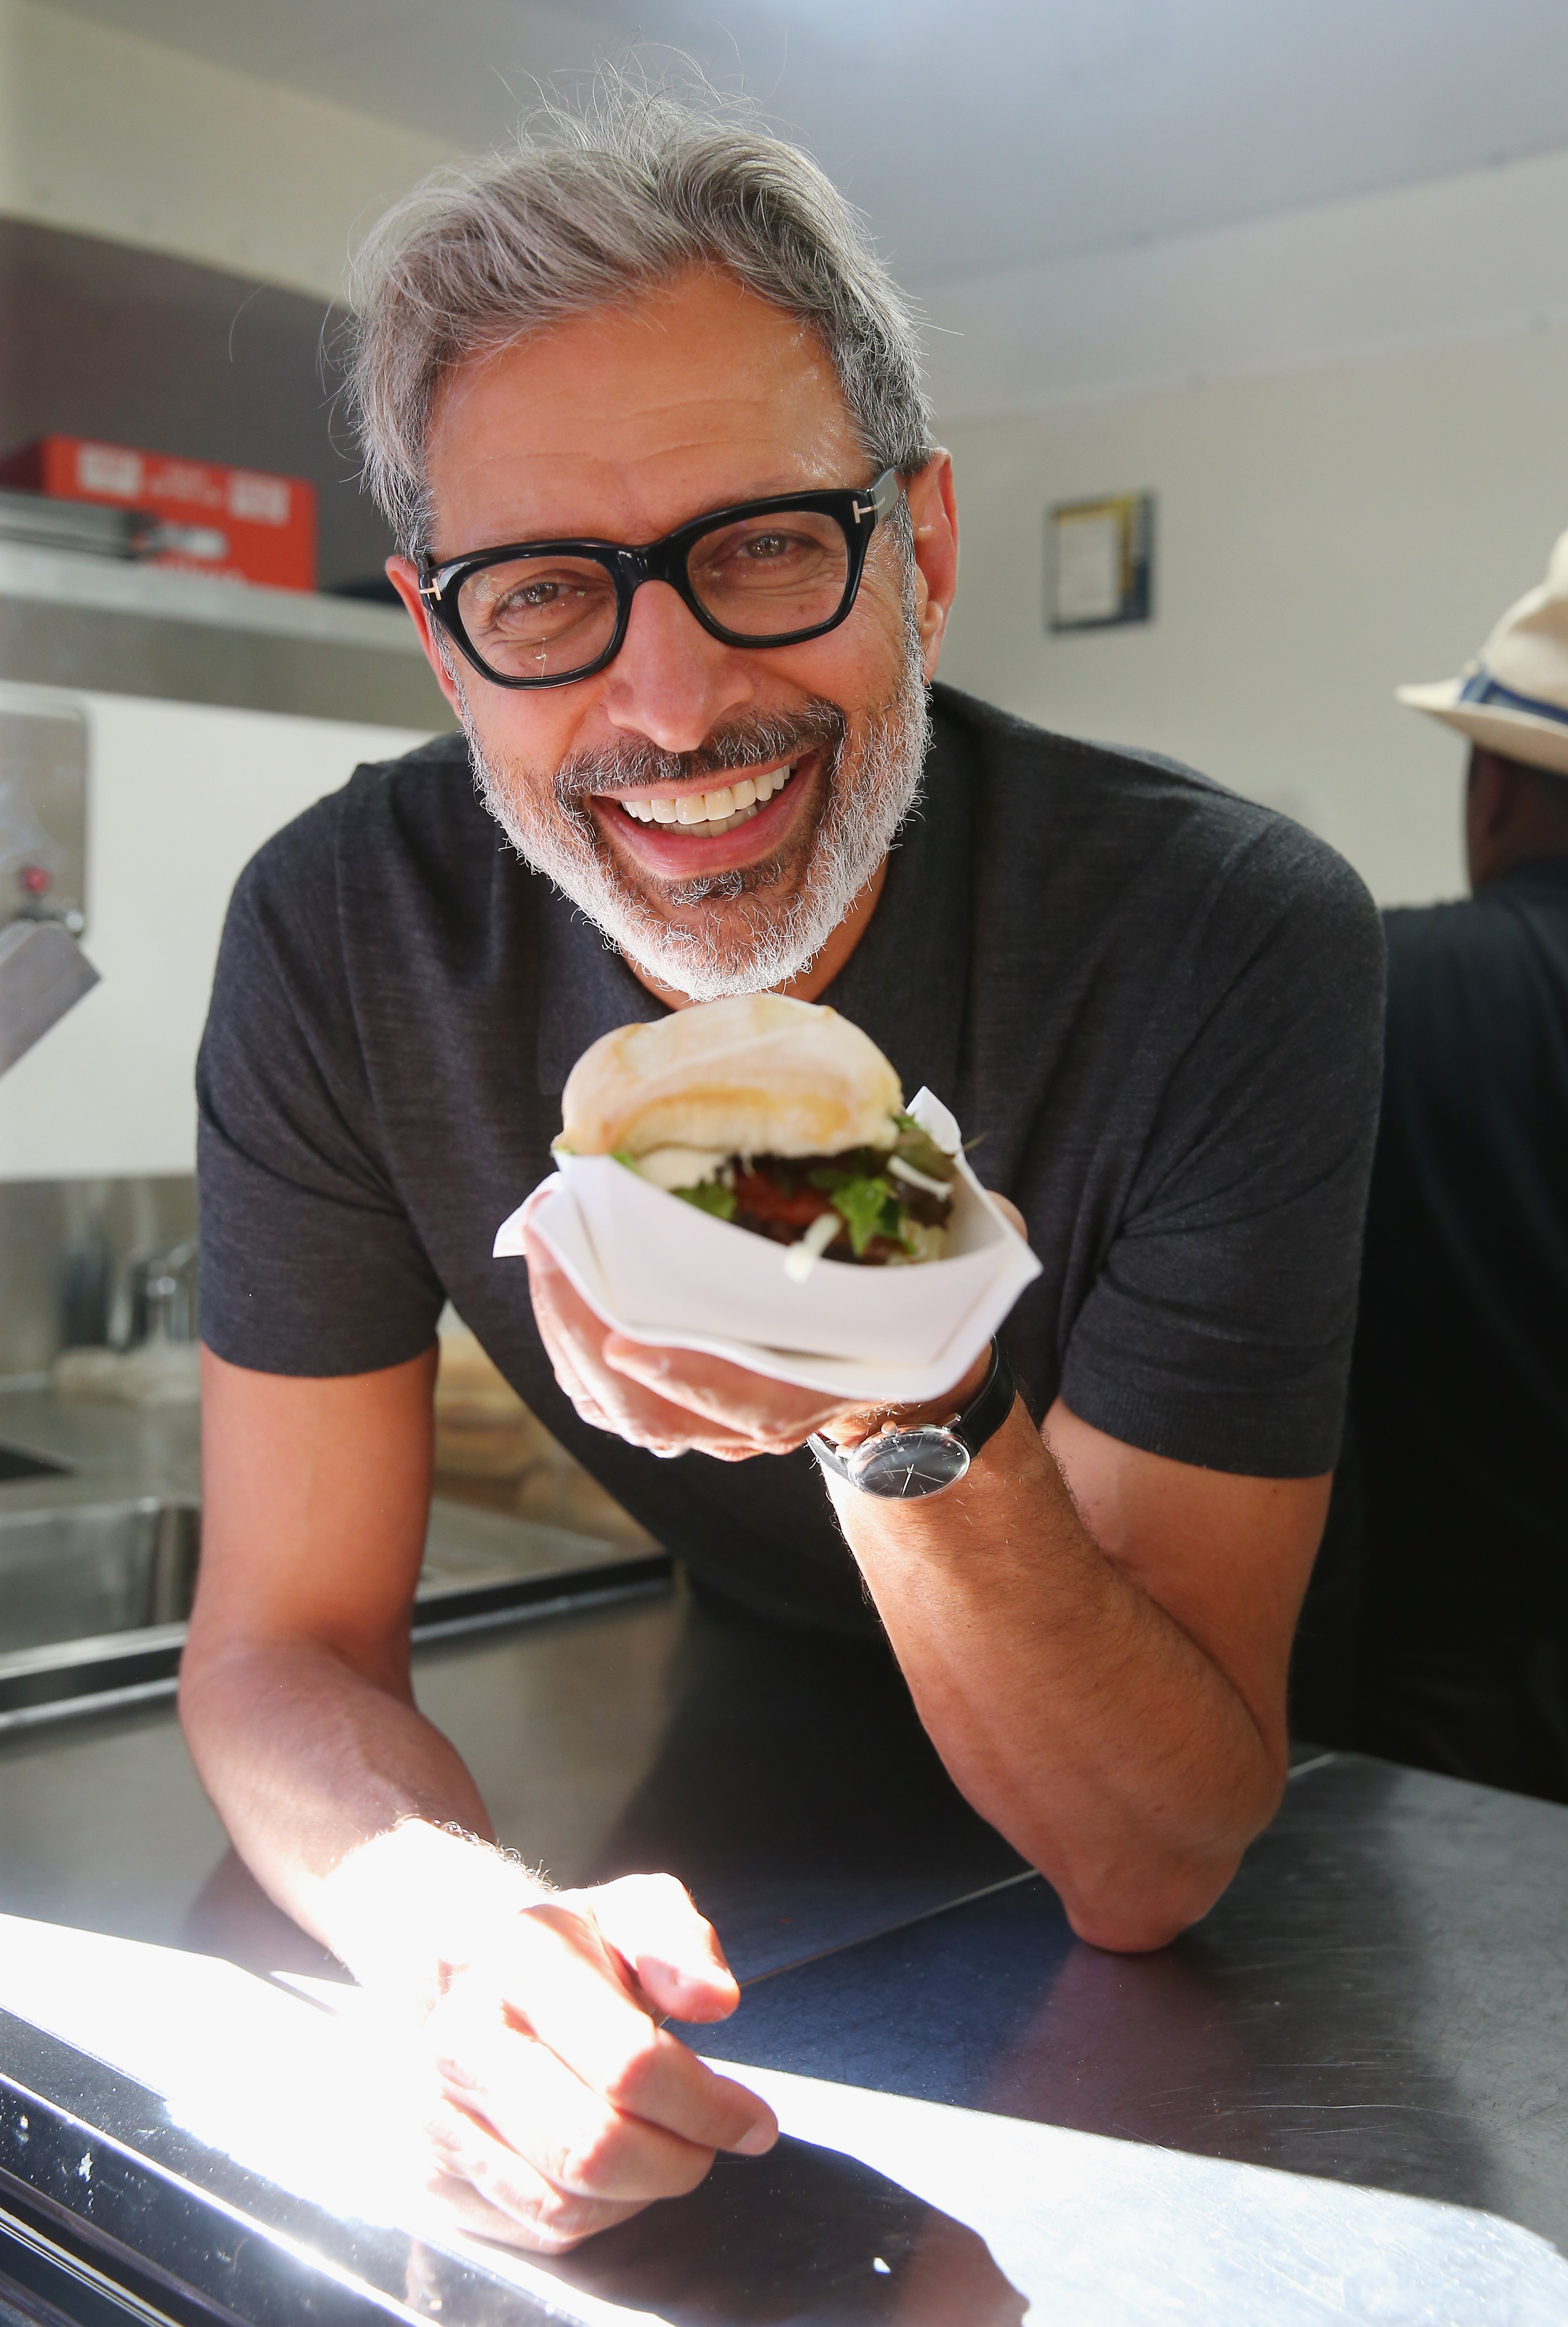 jeff goldblum is currently selling sausage out of a food